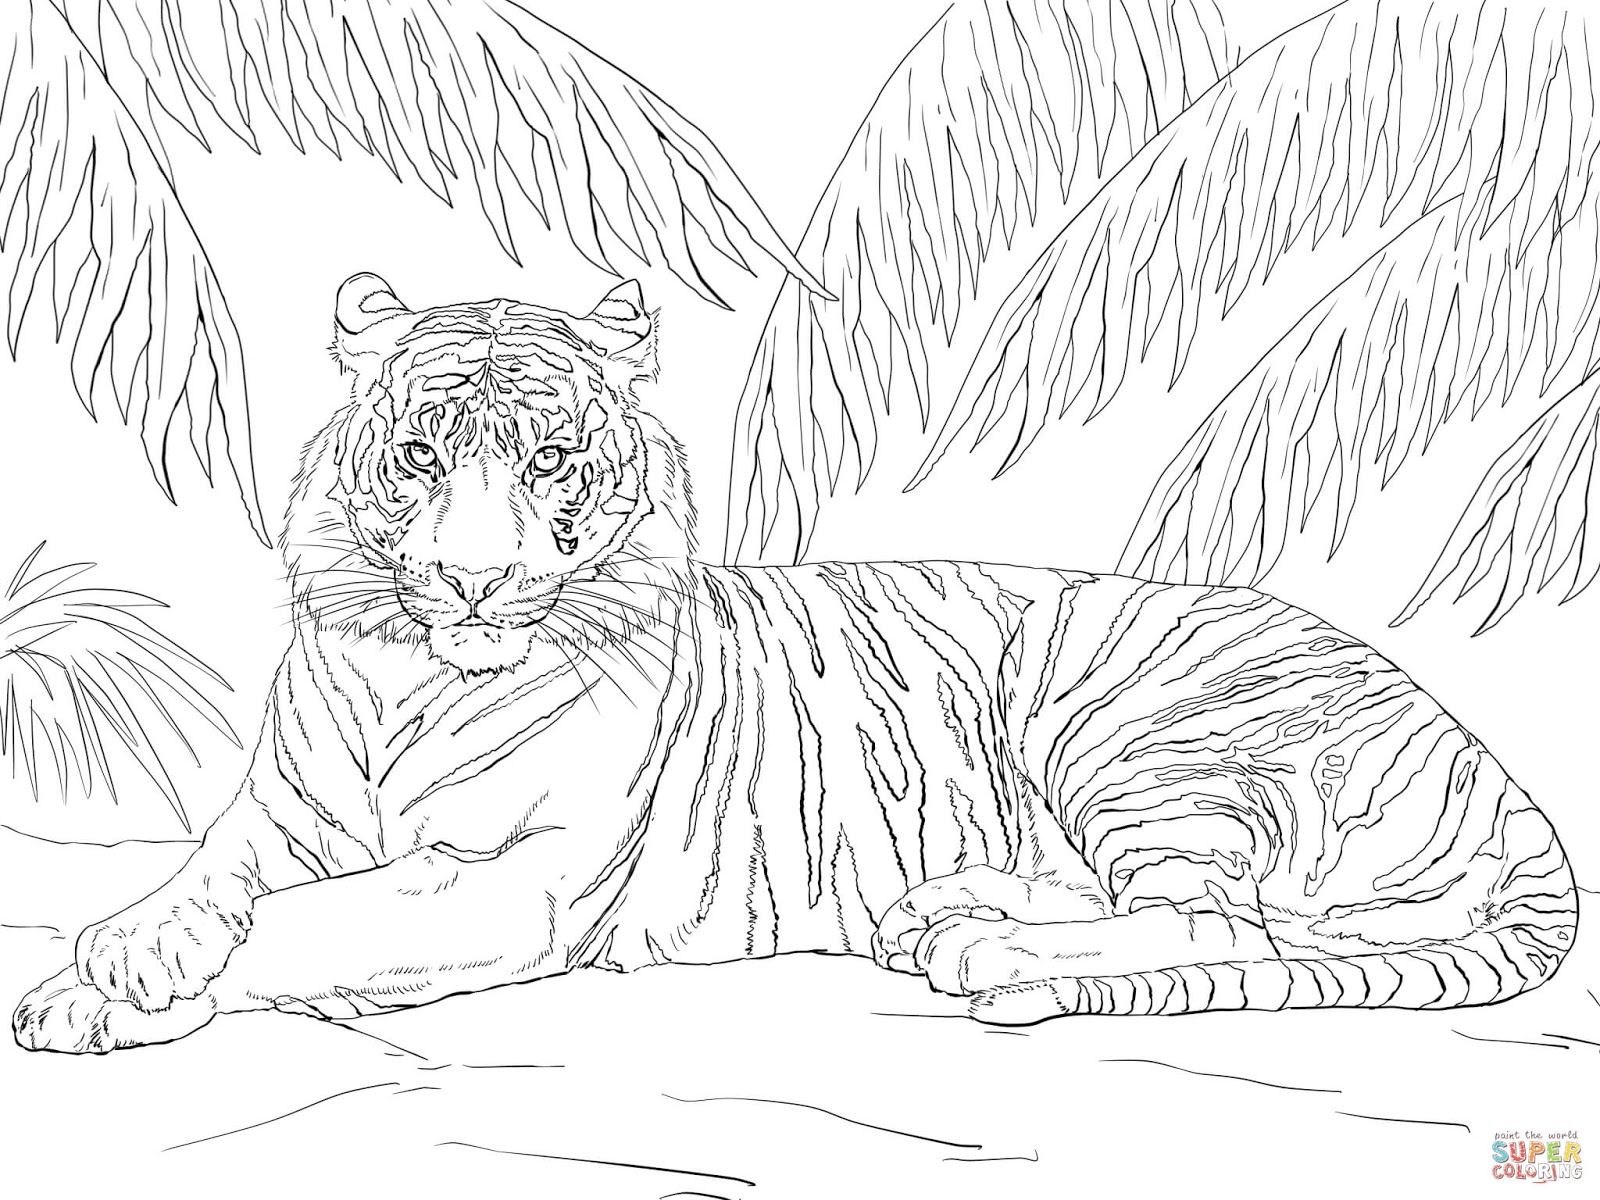 Coloring Pages: Tiger Coloring Pages | COLORING PAGES FOR ADULTS ...